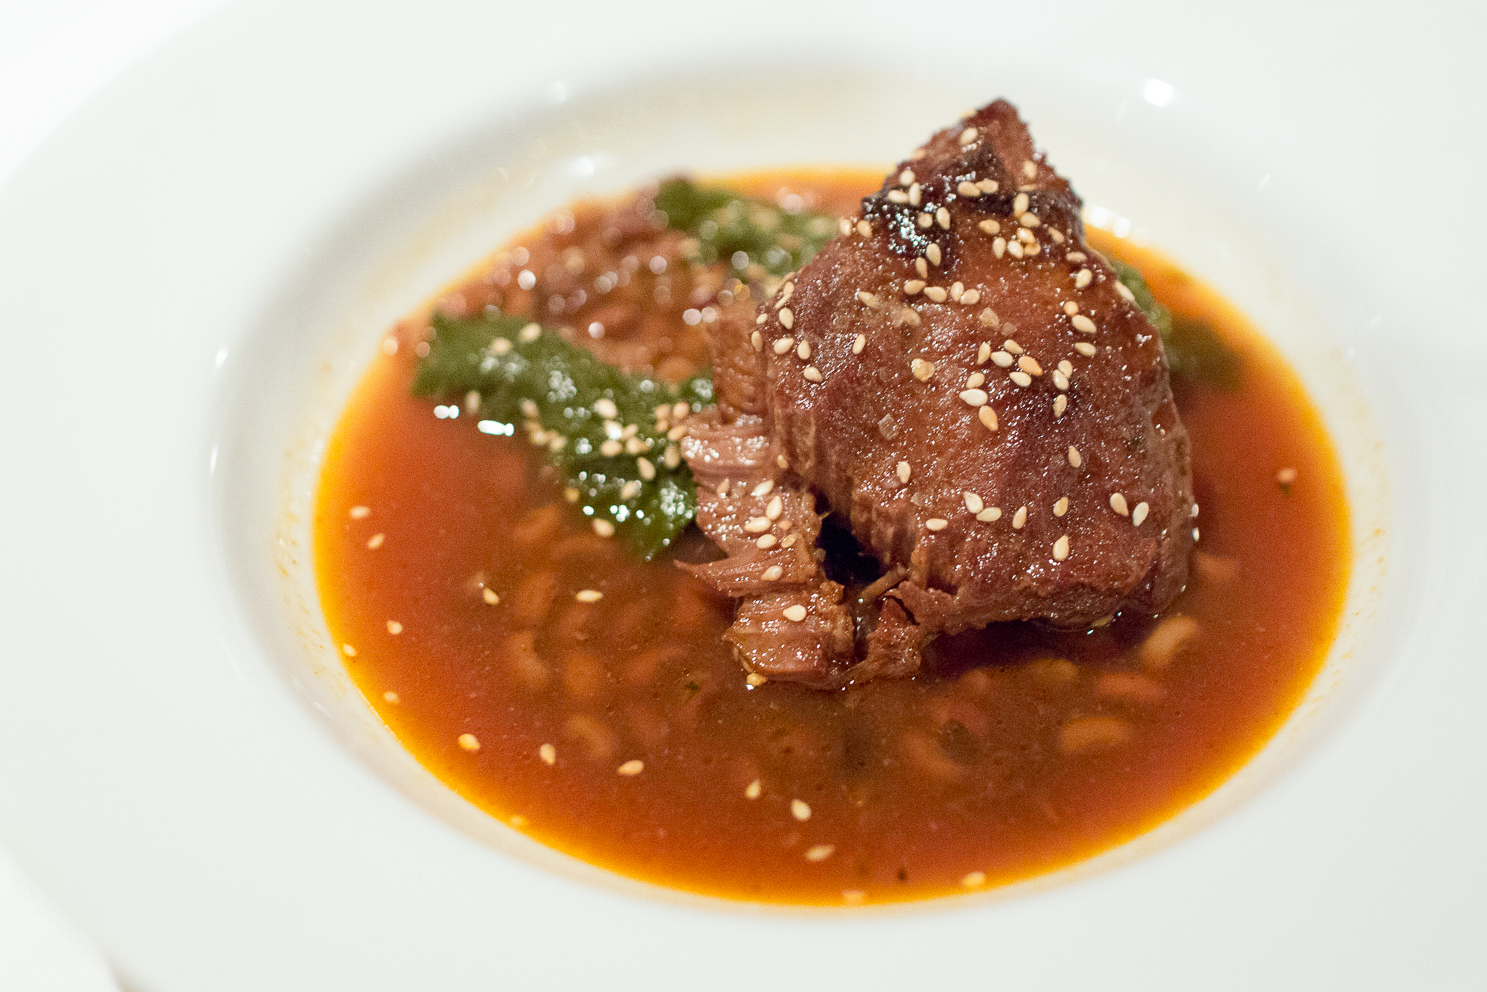 Braised Veal Cheeks, Sea Island Red Peas, Red Russian Mustard Greens, Lemon, Benne